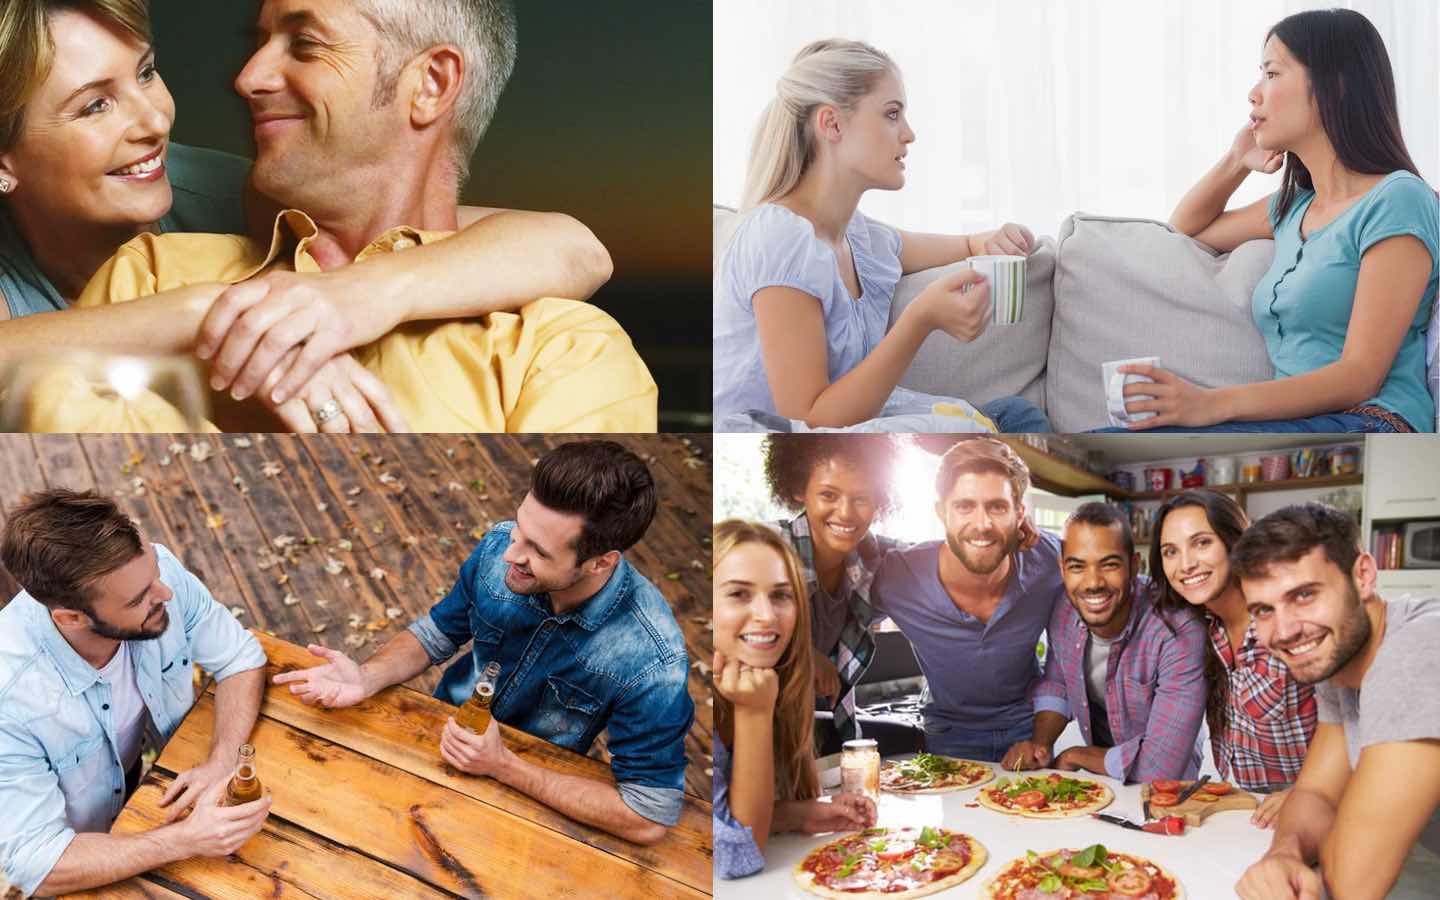 Friends dating serious relationship